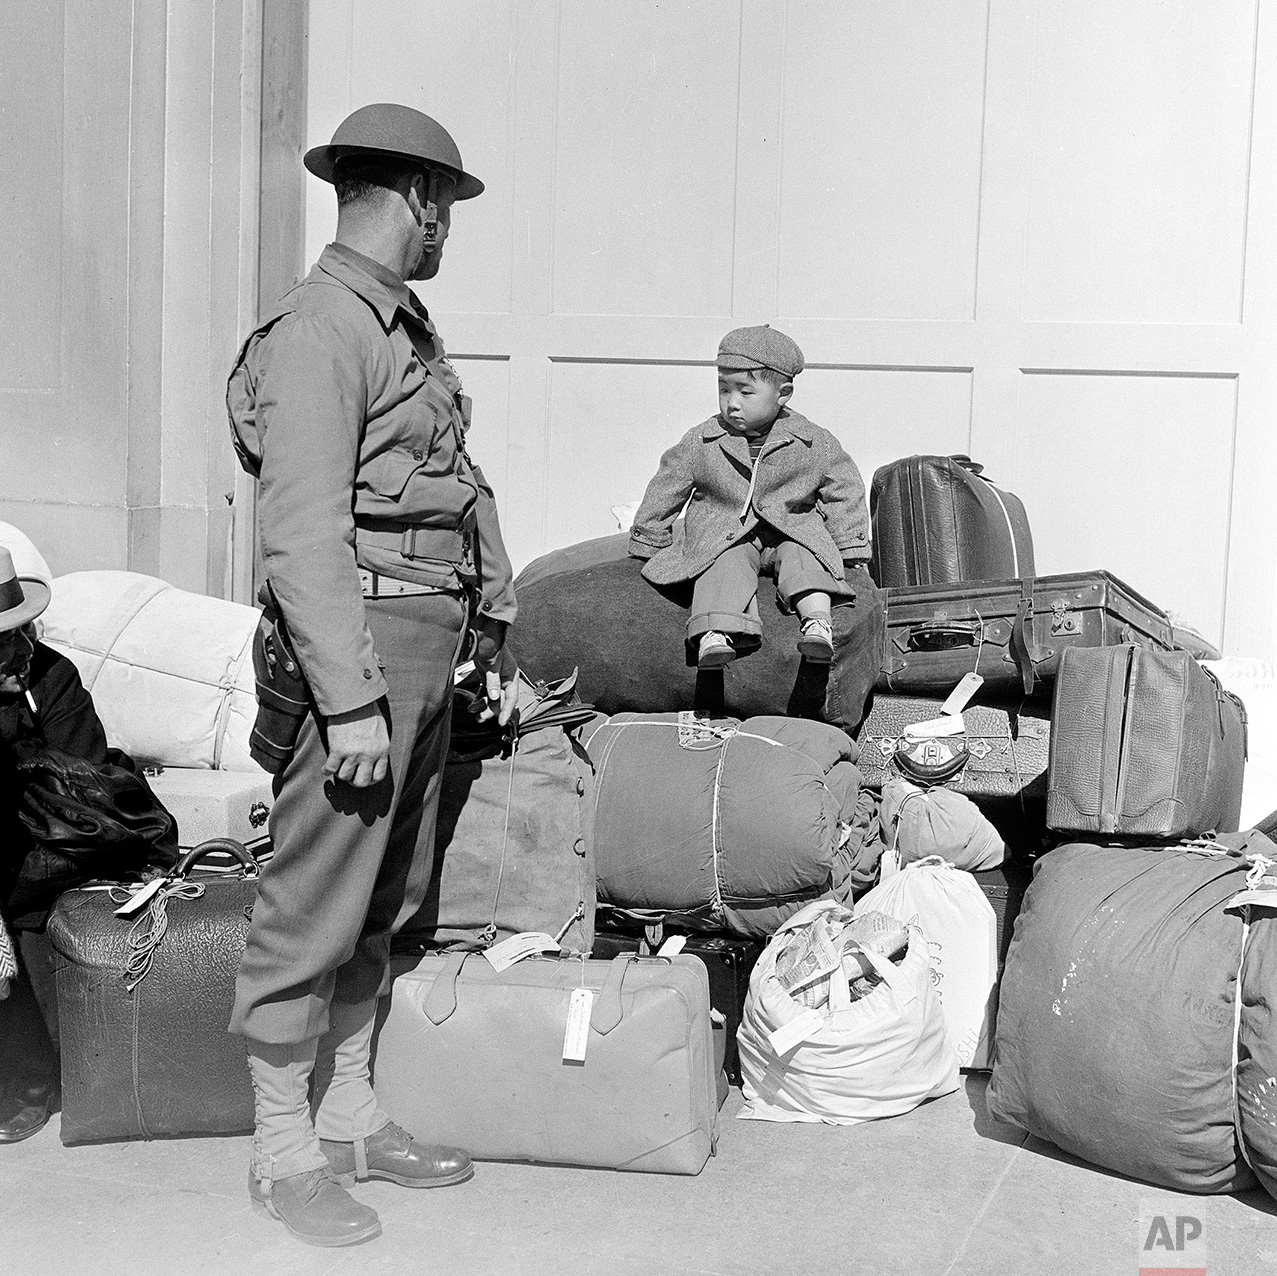 In this April 6, 1942 photo, a boy sits on a pile of baggage as he waits for his parents, as a military policeman watches in San Francisco. More than 650 citizens of Japanese ancestry were evacuated from their homes and sent to Santa Anita racetrack, an assembly center for war relocation of alien and American-born Japanese civilians. (AP Photo)